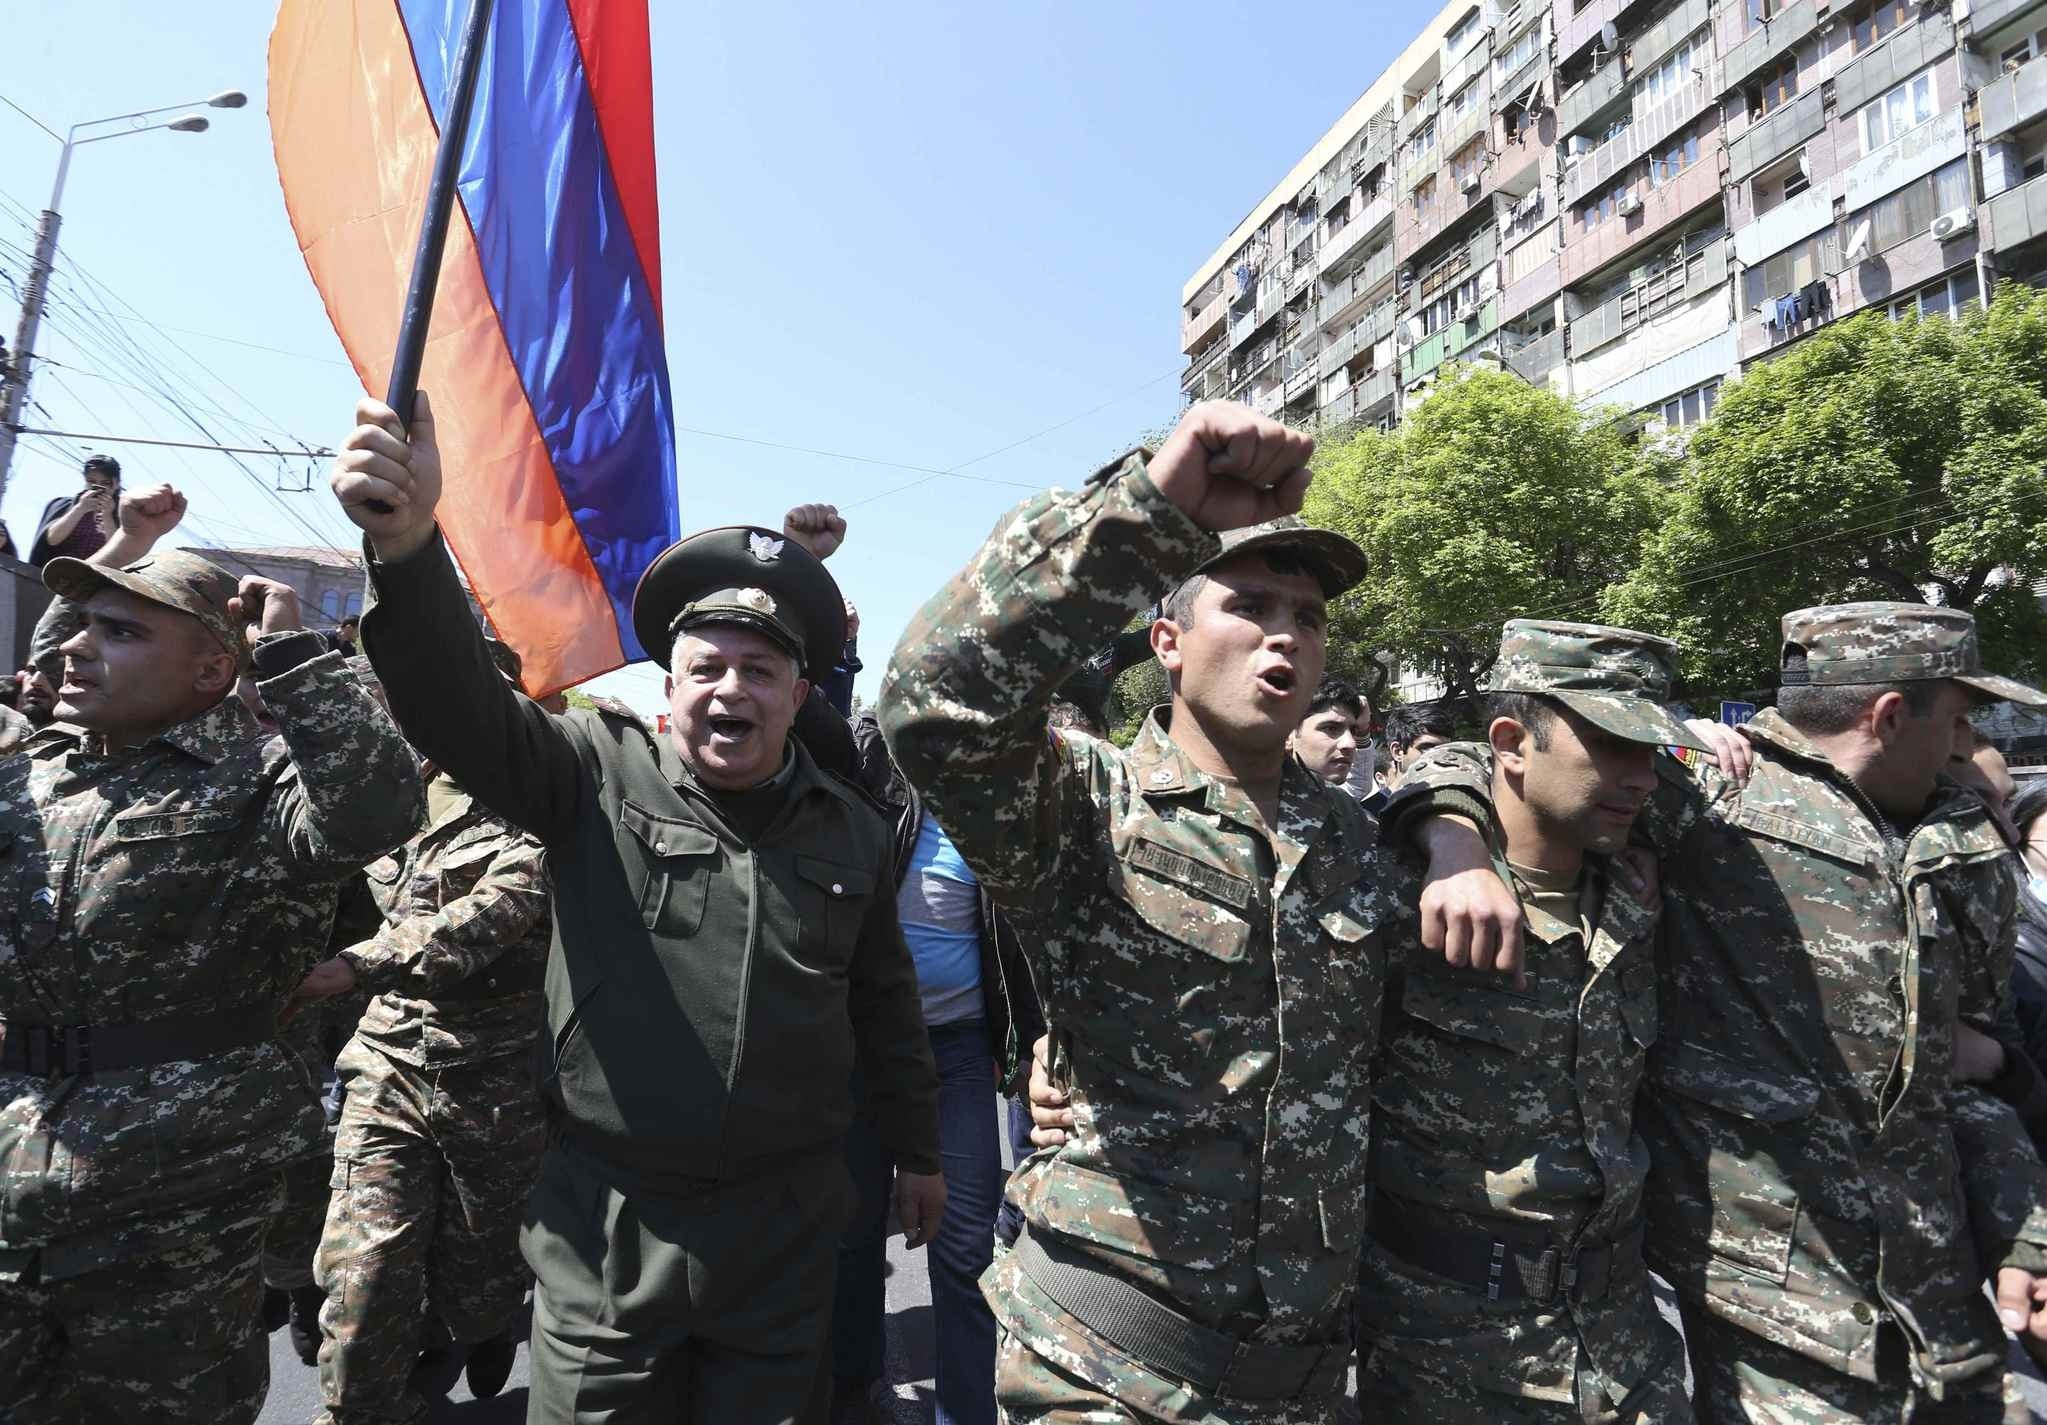 People march during a protest against the appointment of ex-president Serzh Sarksyan as the new prime minister in Yerevan, Armenia April 23, 2018. (REUTERS Photo)